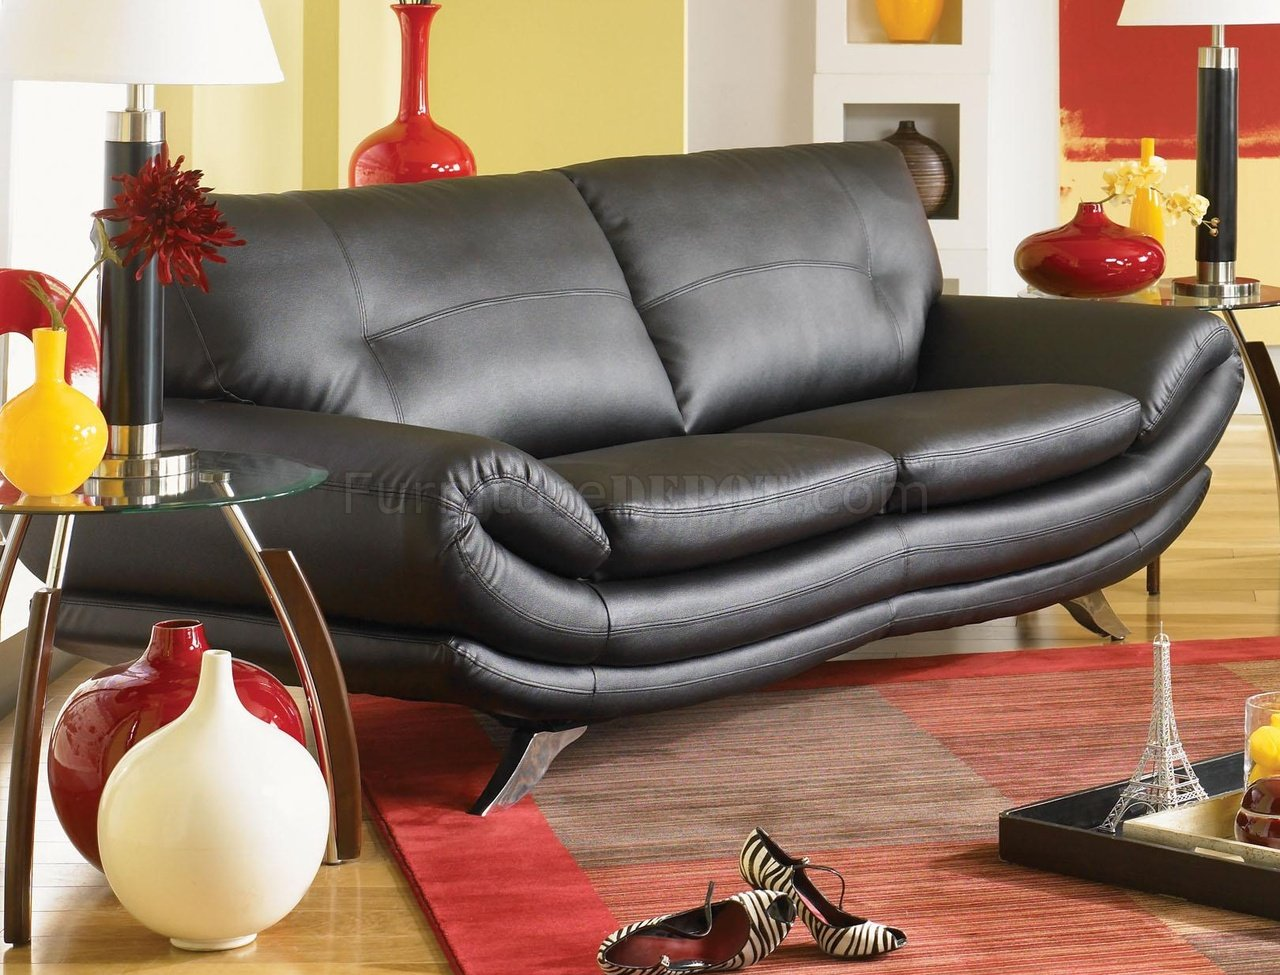 sofas with legs how to build a sofa chair black leather chrome venice faux